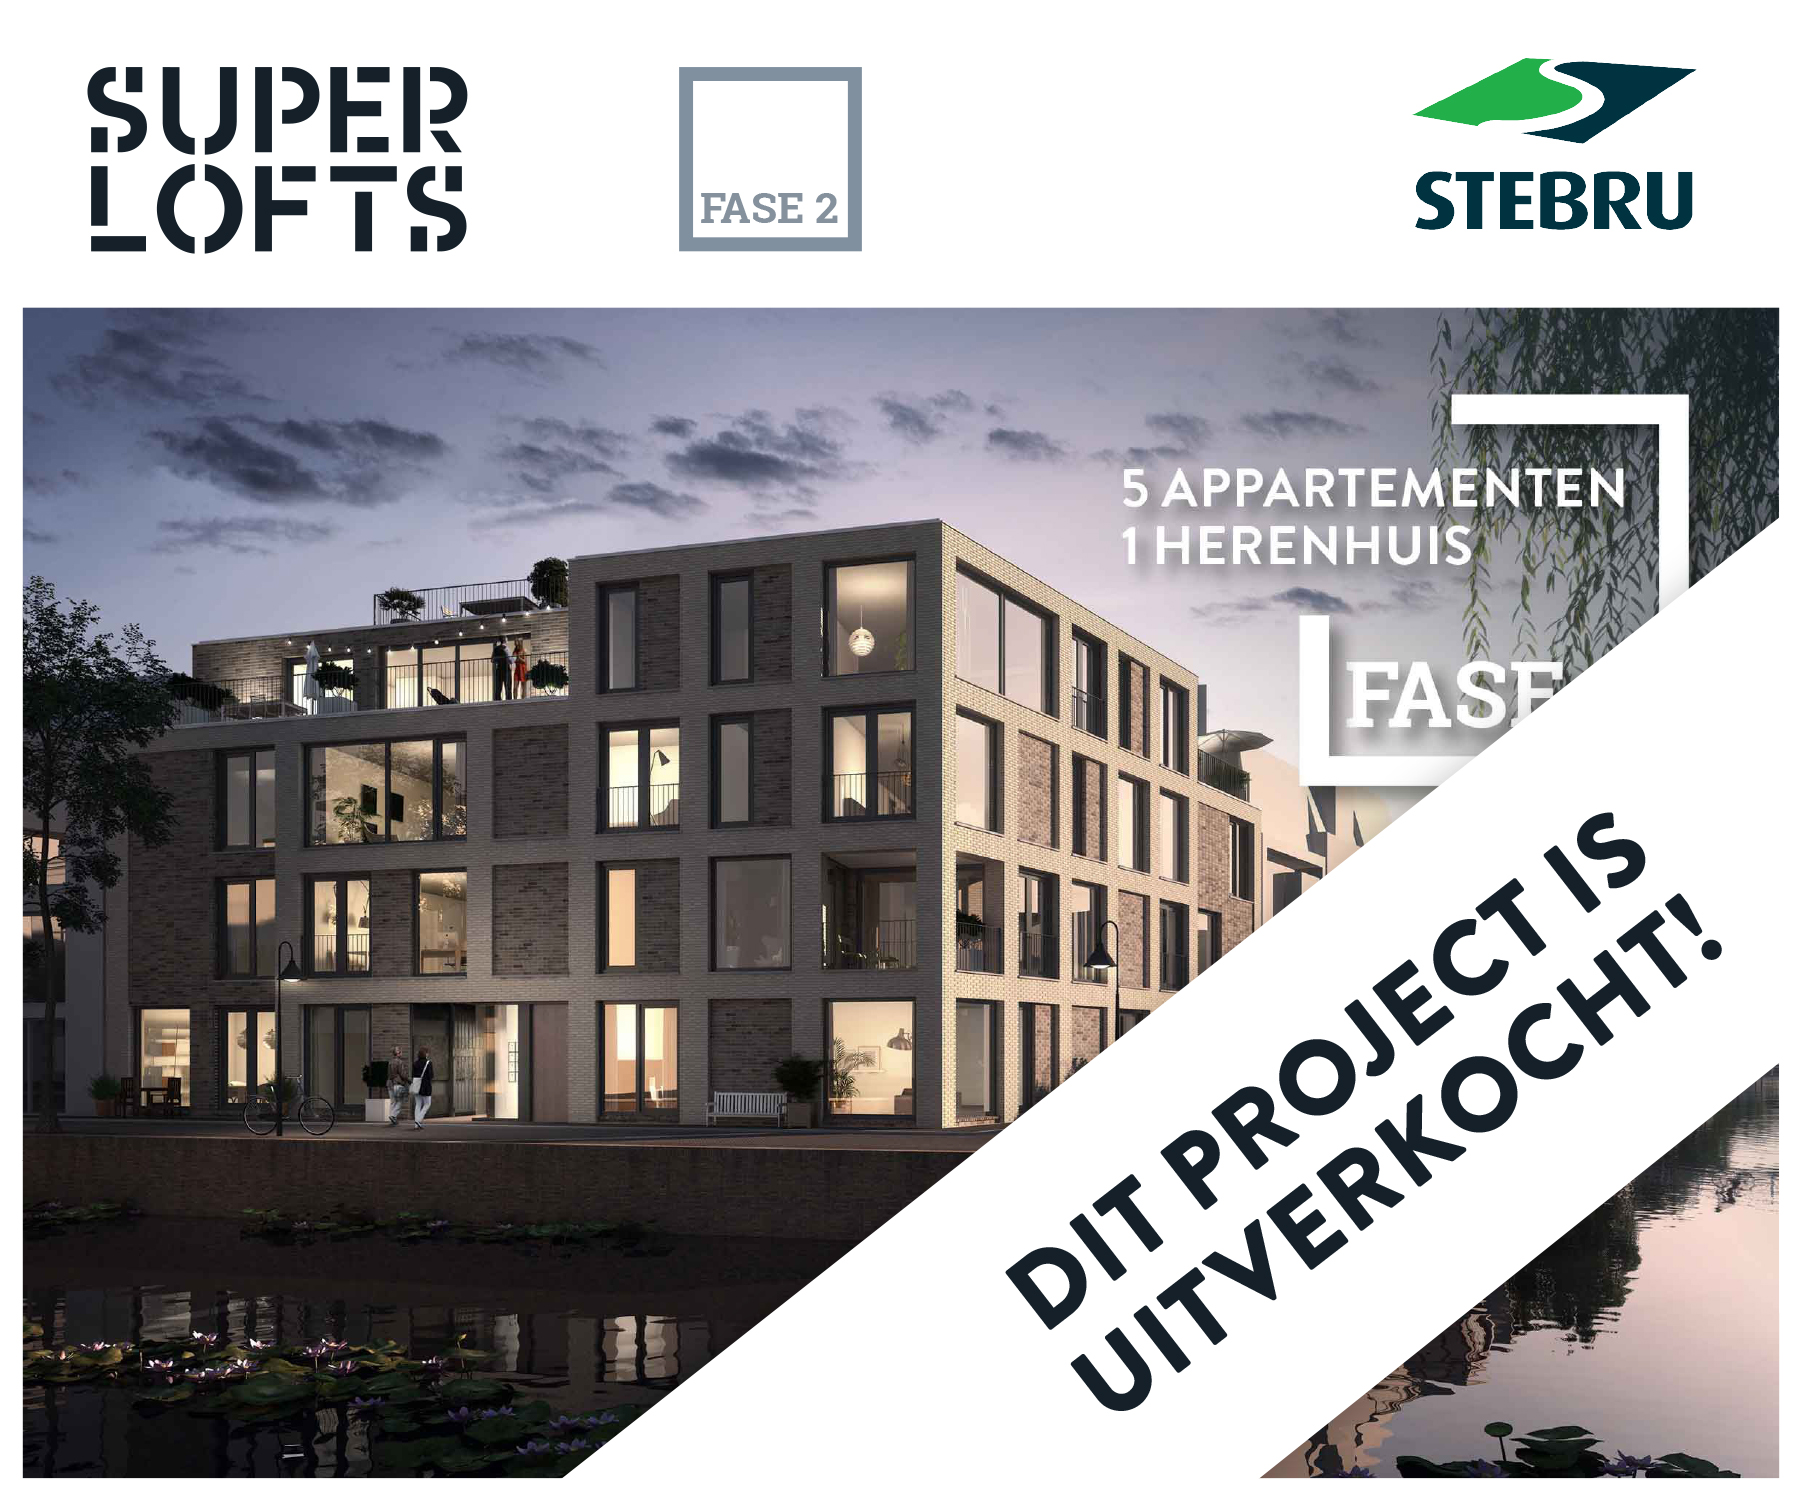 Superlofts Delft - Dit project is uitverkocht